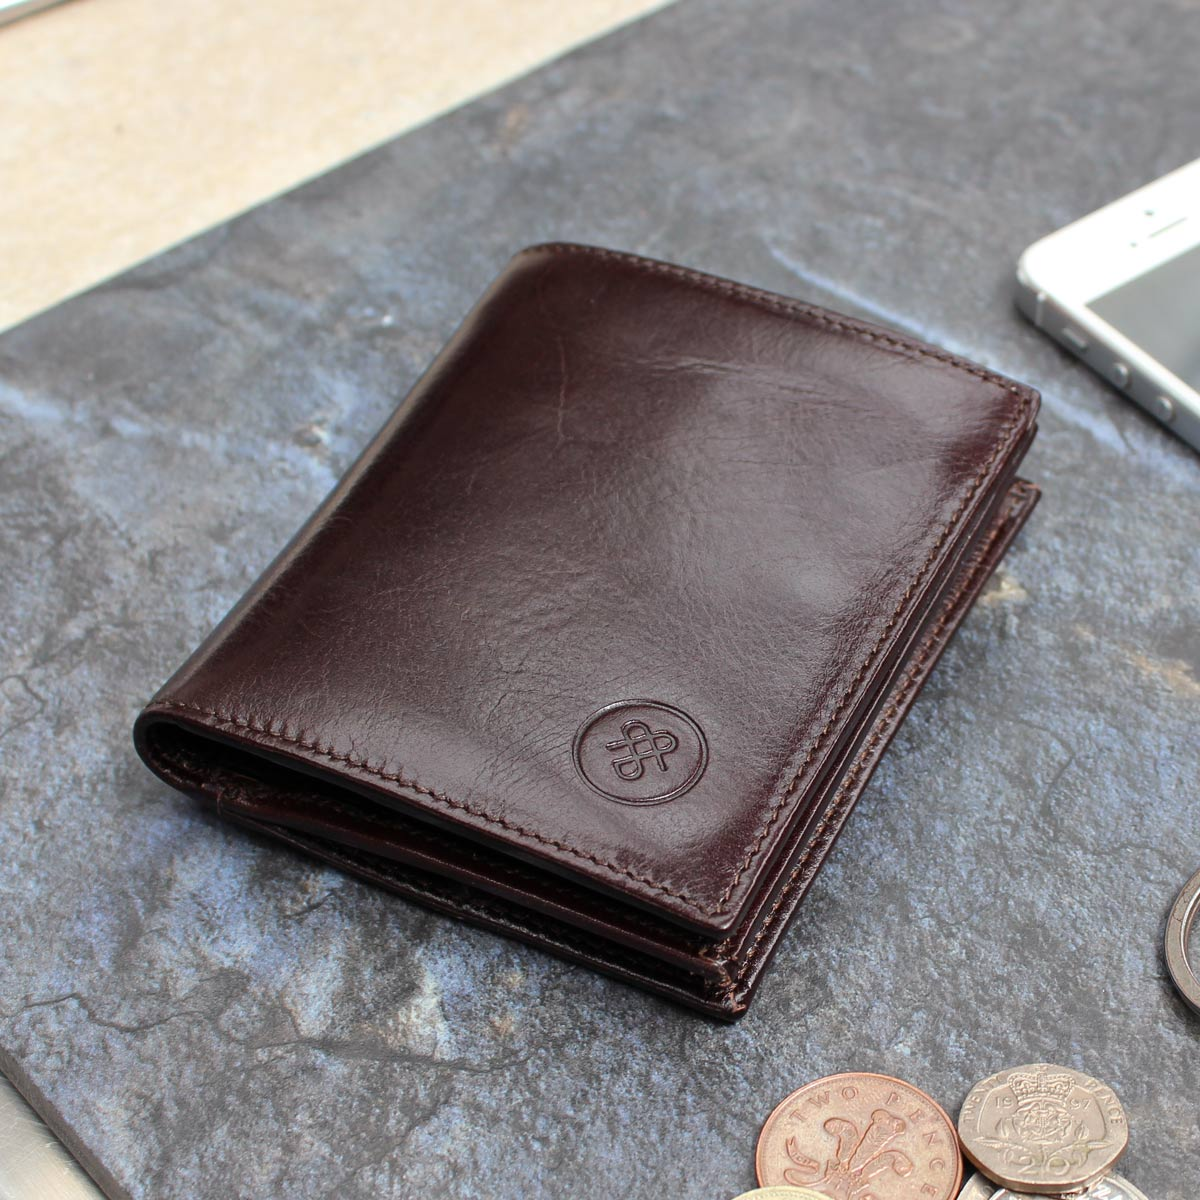 Image 8 of the 'Rocca' Dark Chocolate Veg-Tanned Leather Wallet